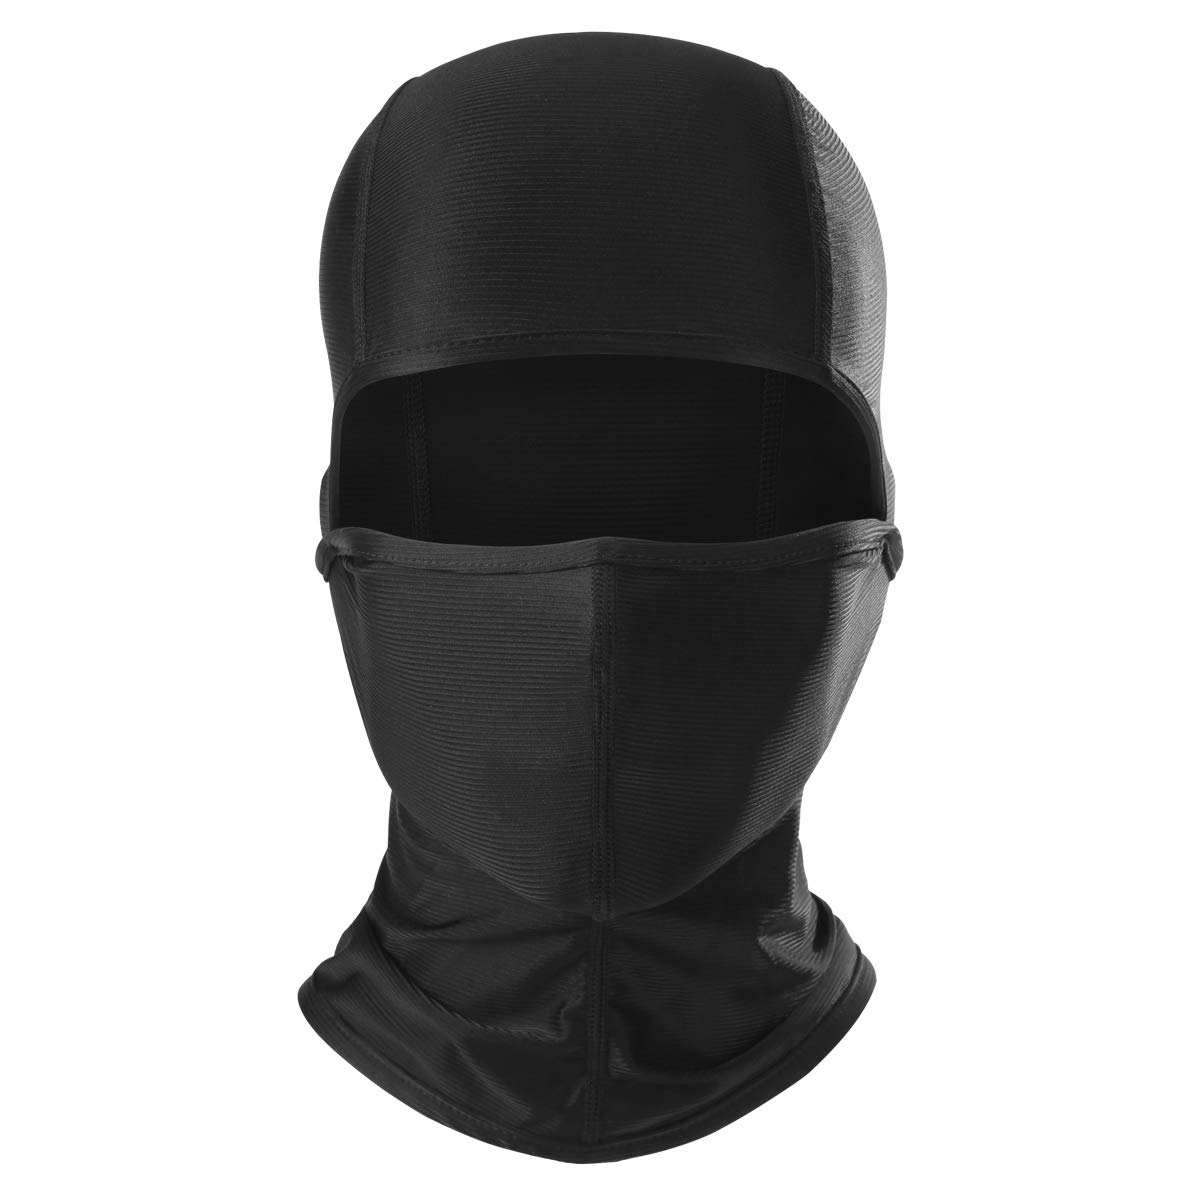 JIUSY Excellent Elastic Comfortable Windproof Balaclava Face Mask for Summer Outdoor Sports